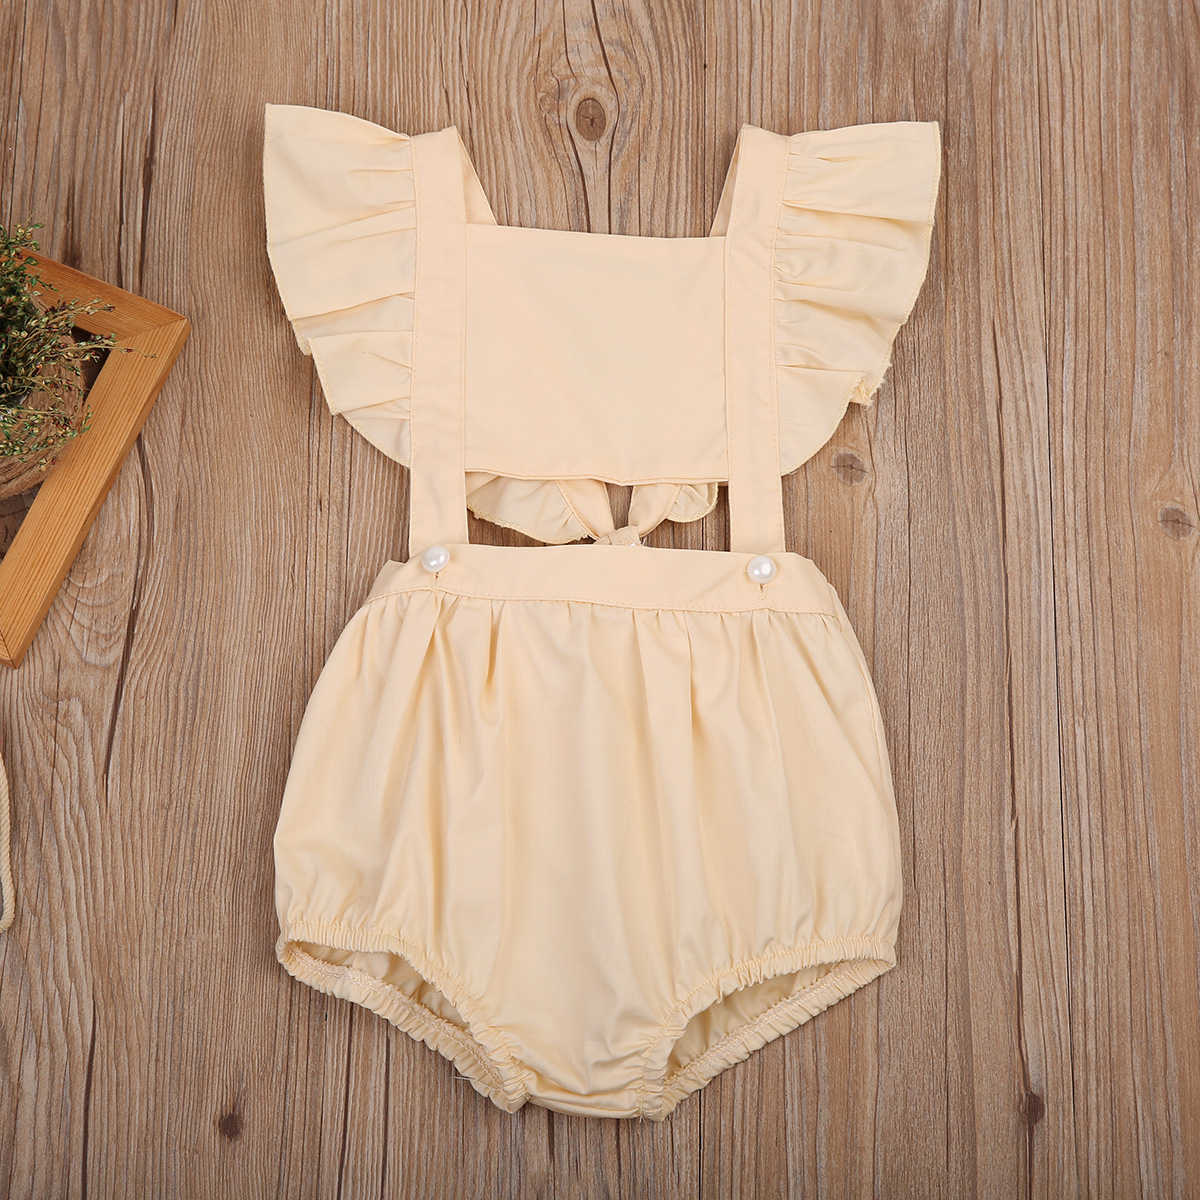 Summer Toddler Baby Girl Kids Sleeveless Ruffles Romper Jumpsuit Sunsuit One-Pieces Outfits Clothes 1-5 2017 summer cute newborn baby boy girl cartoon fox romper sleeveless backless jumpsuit one pieces outfits sunsuit 0 24m